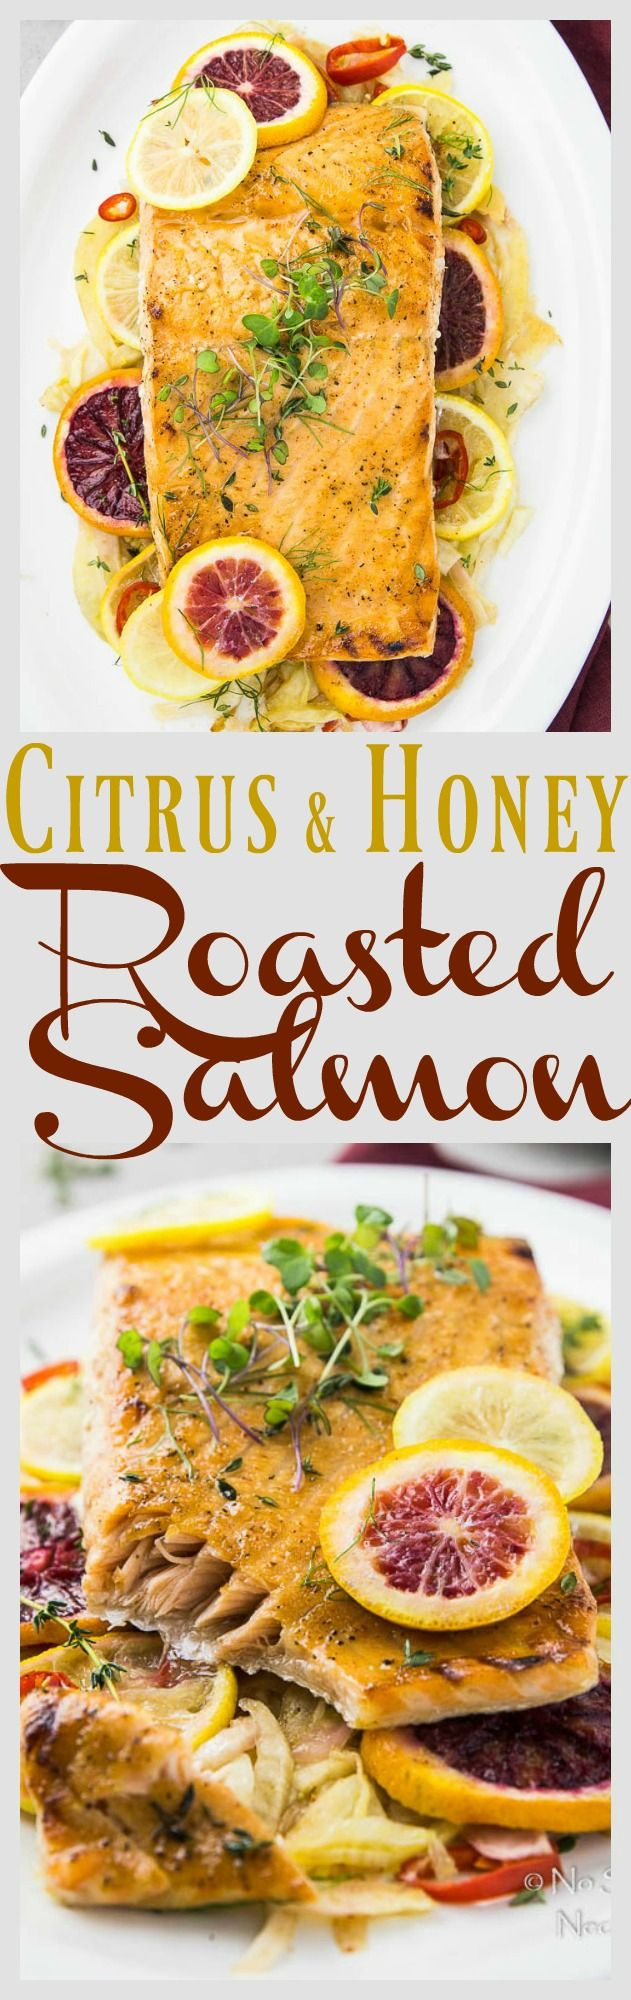 Easy Citrus & Honey Roasted Salmon with Fennel & Blood Orange Salad